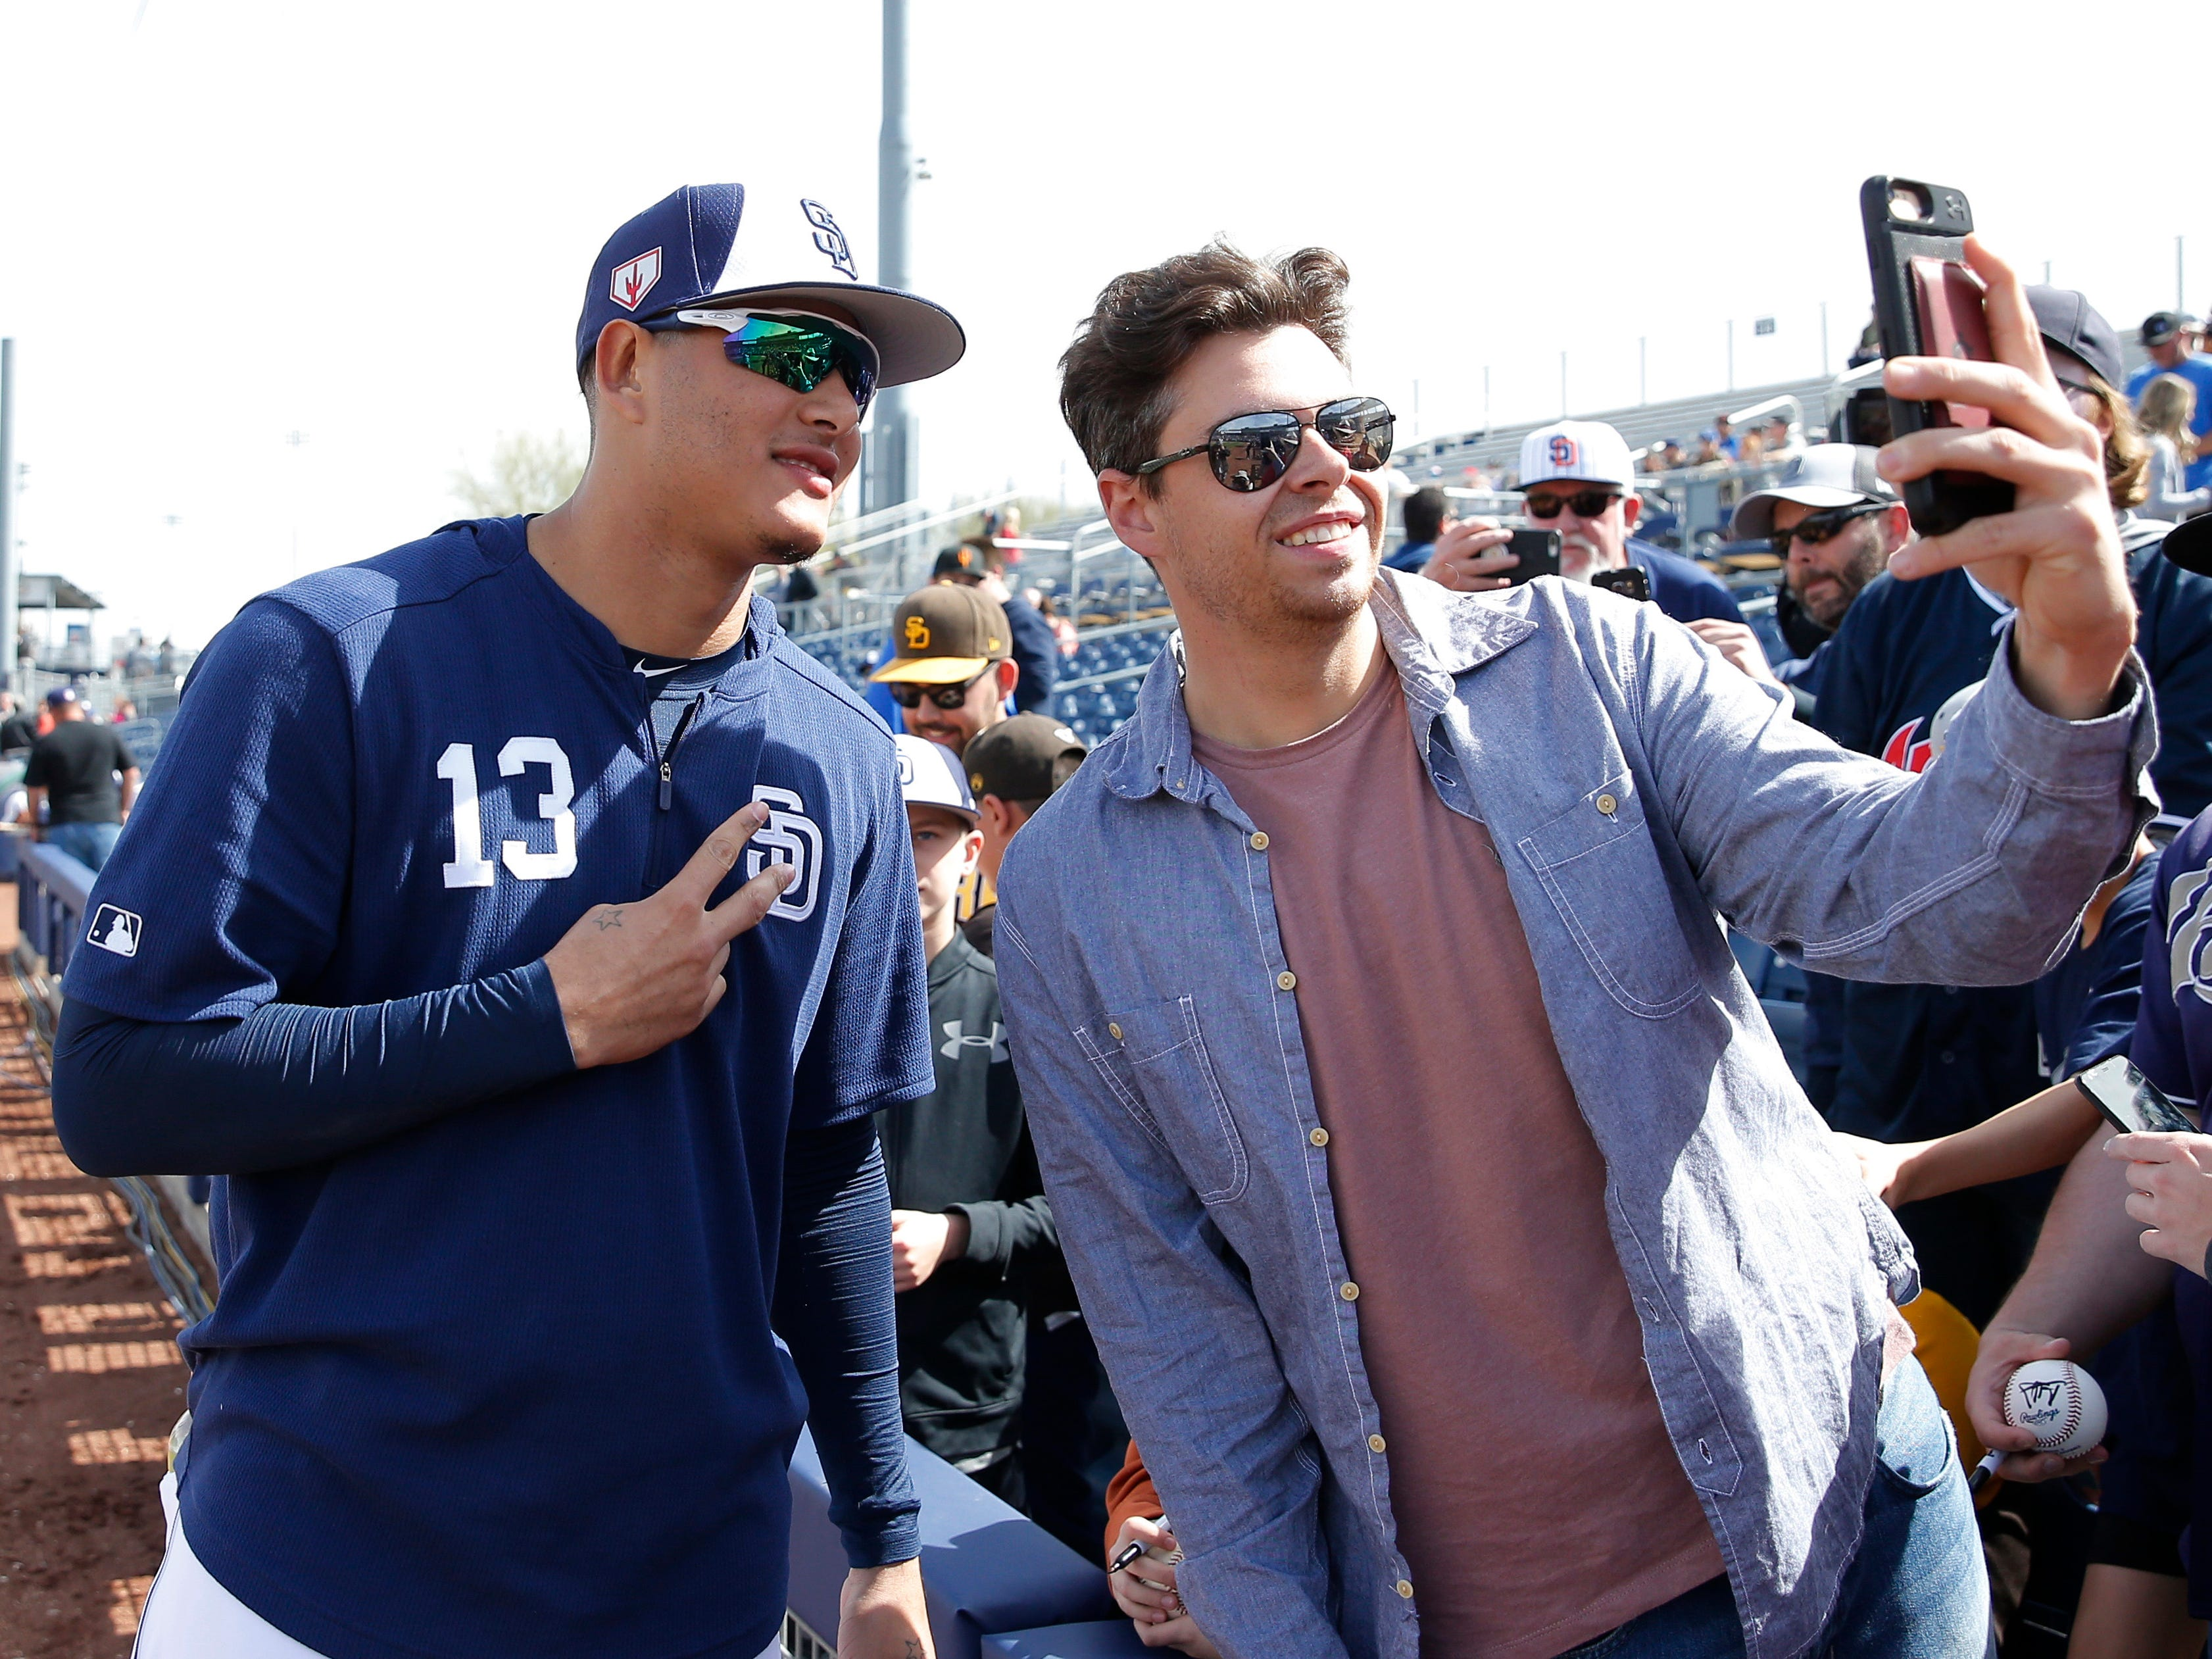 Feb. 24: New San Diego Padres third baseman Manny Machado takes pictures with fans before a spring training game against the Chicago White Sox at Peoria Stadium.